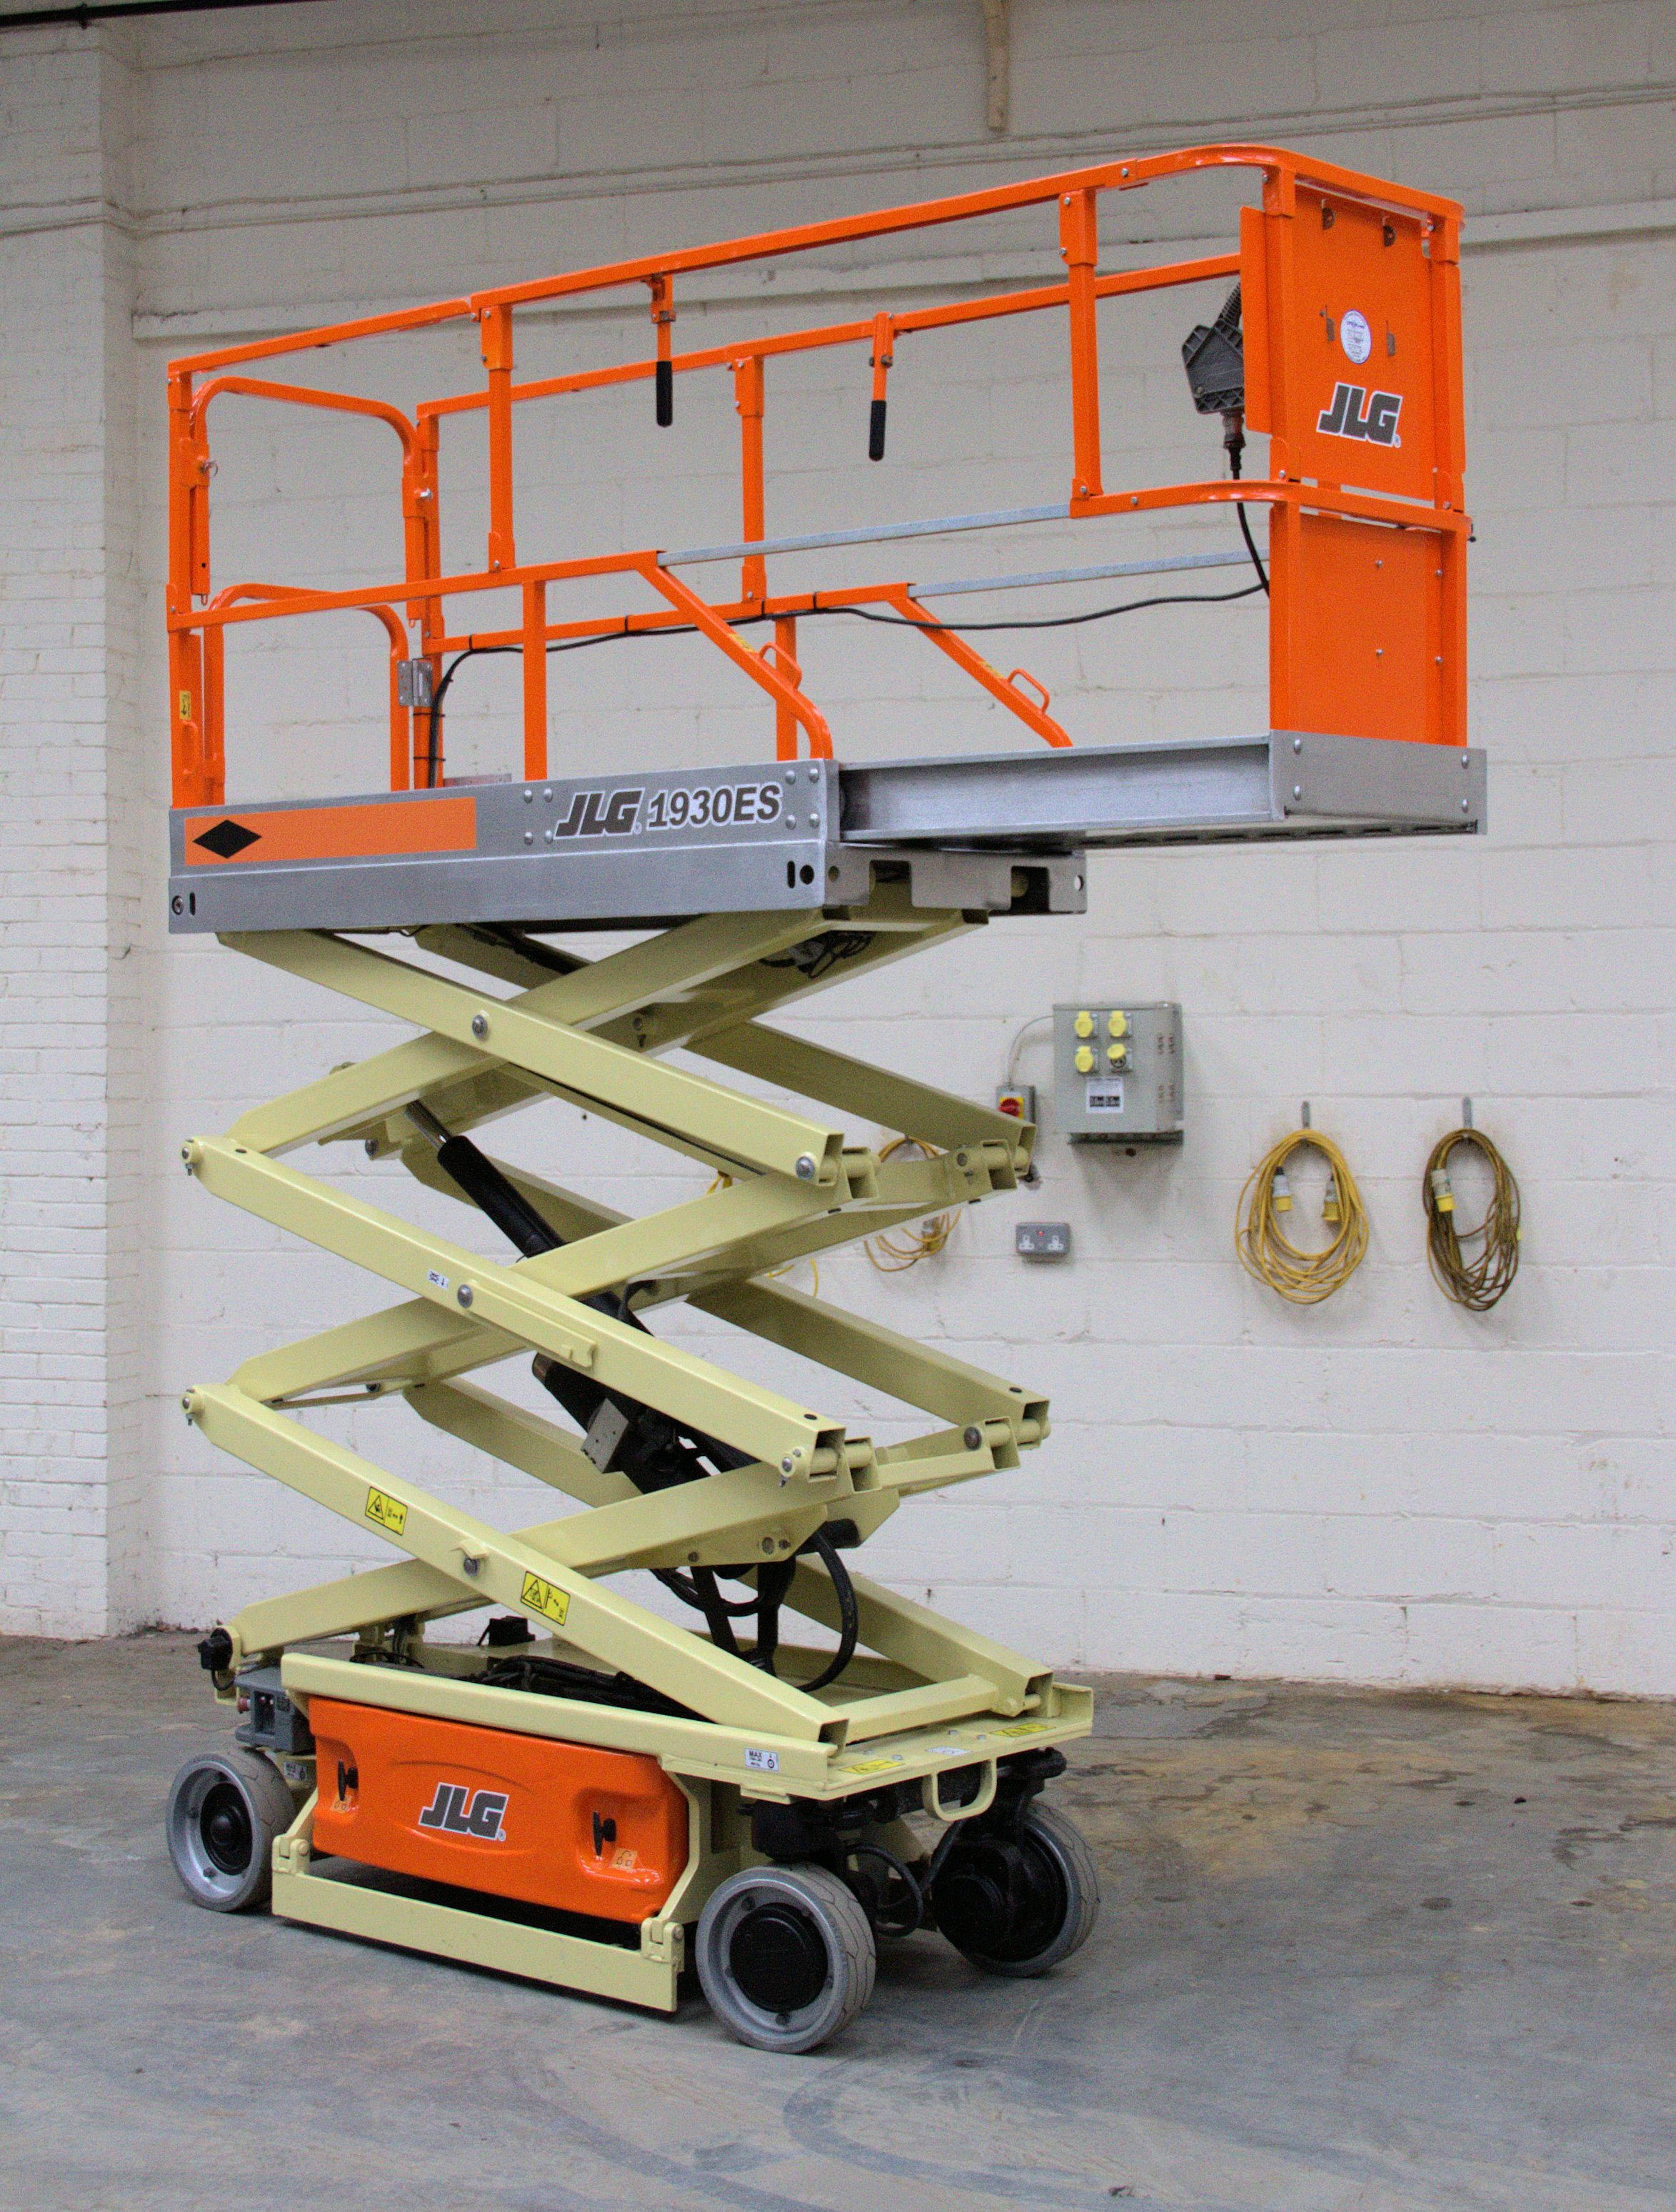 Jlg 1930es Scissor Lift Wiring Diagram Free Download Diagrams New Hire Safe Solutions Ltd 18 At Genie Gs 2668 Rt